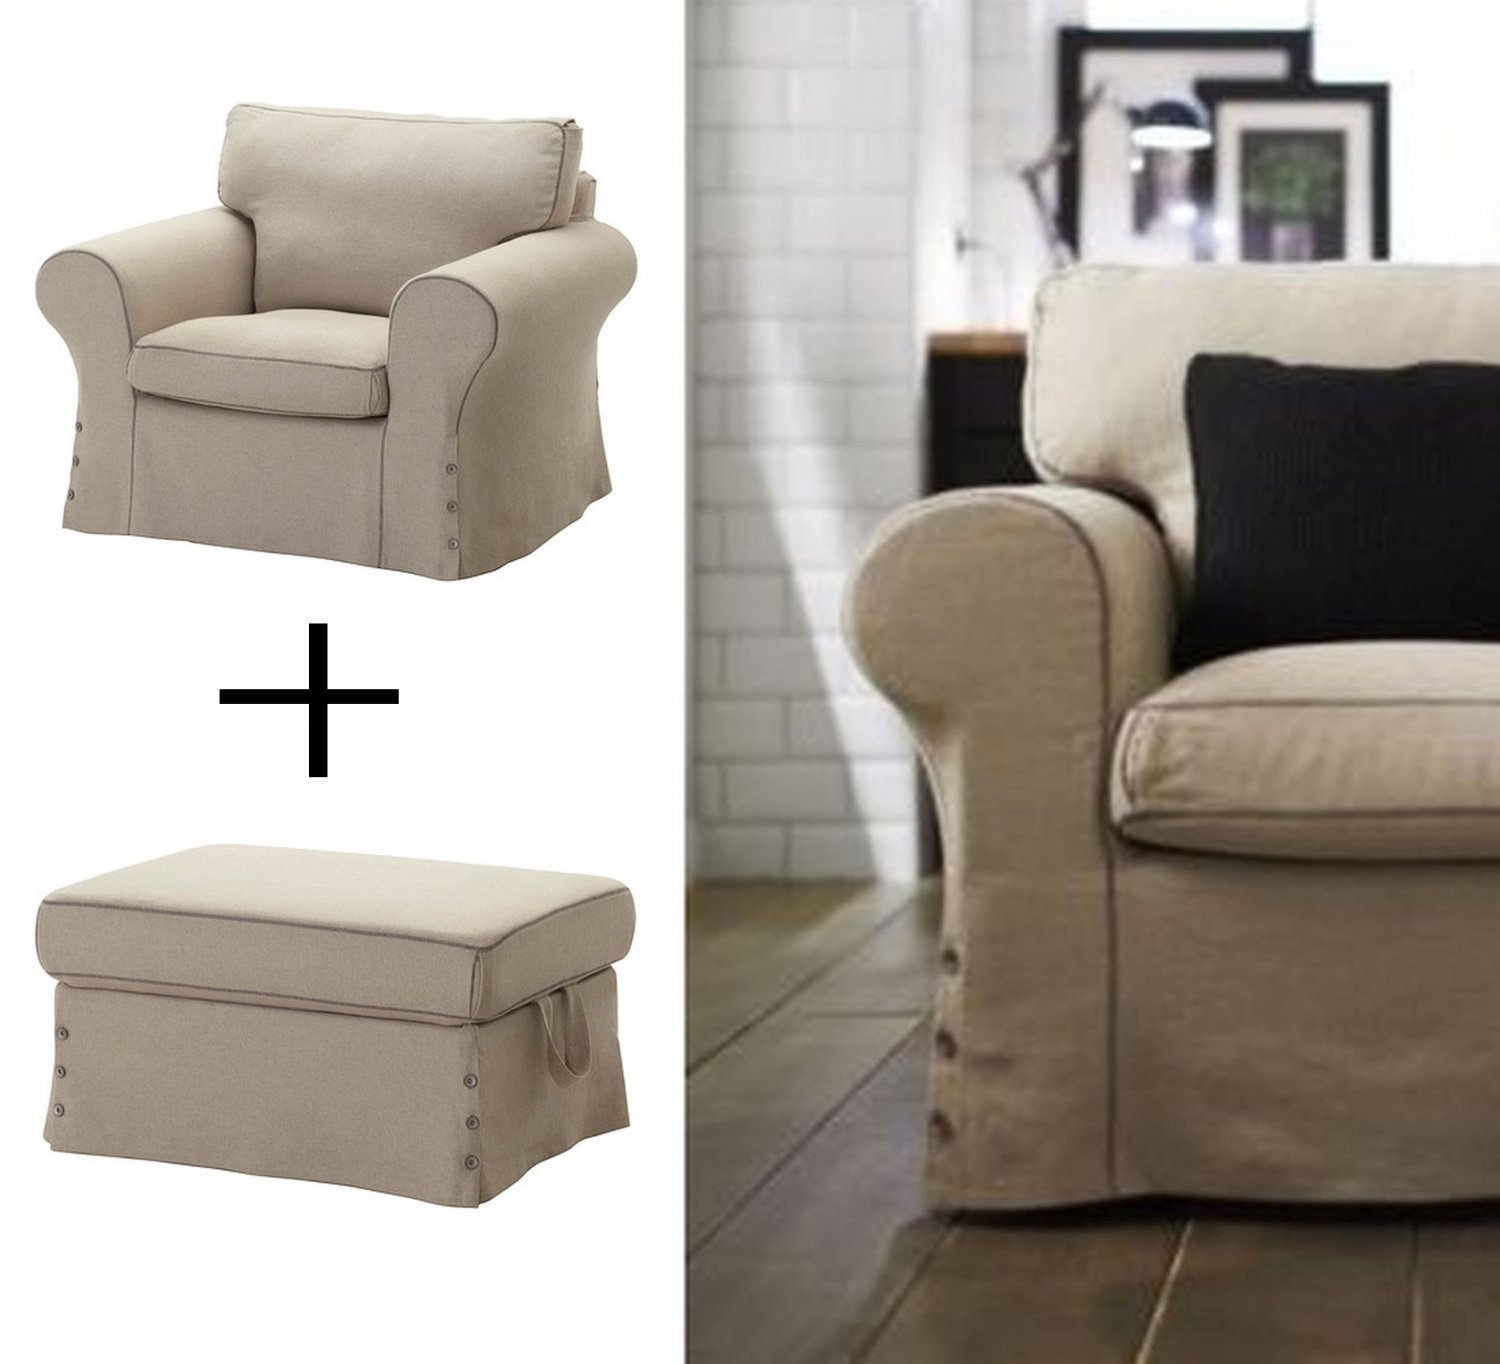 ikea jennylund chair covers uk zaaz ergonomic ektorp armchair and footstool ottoman